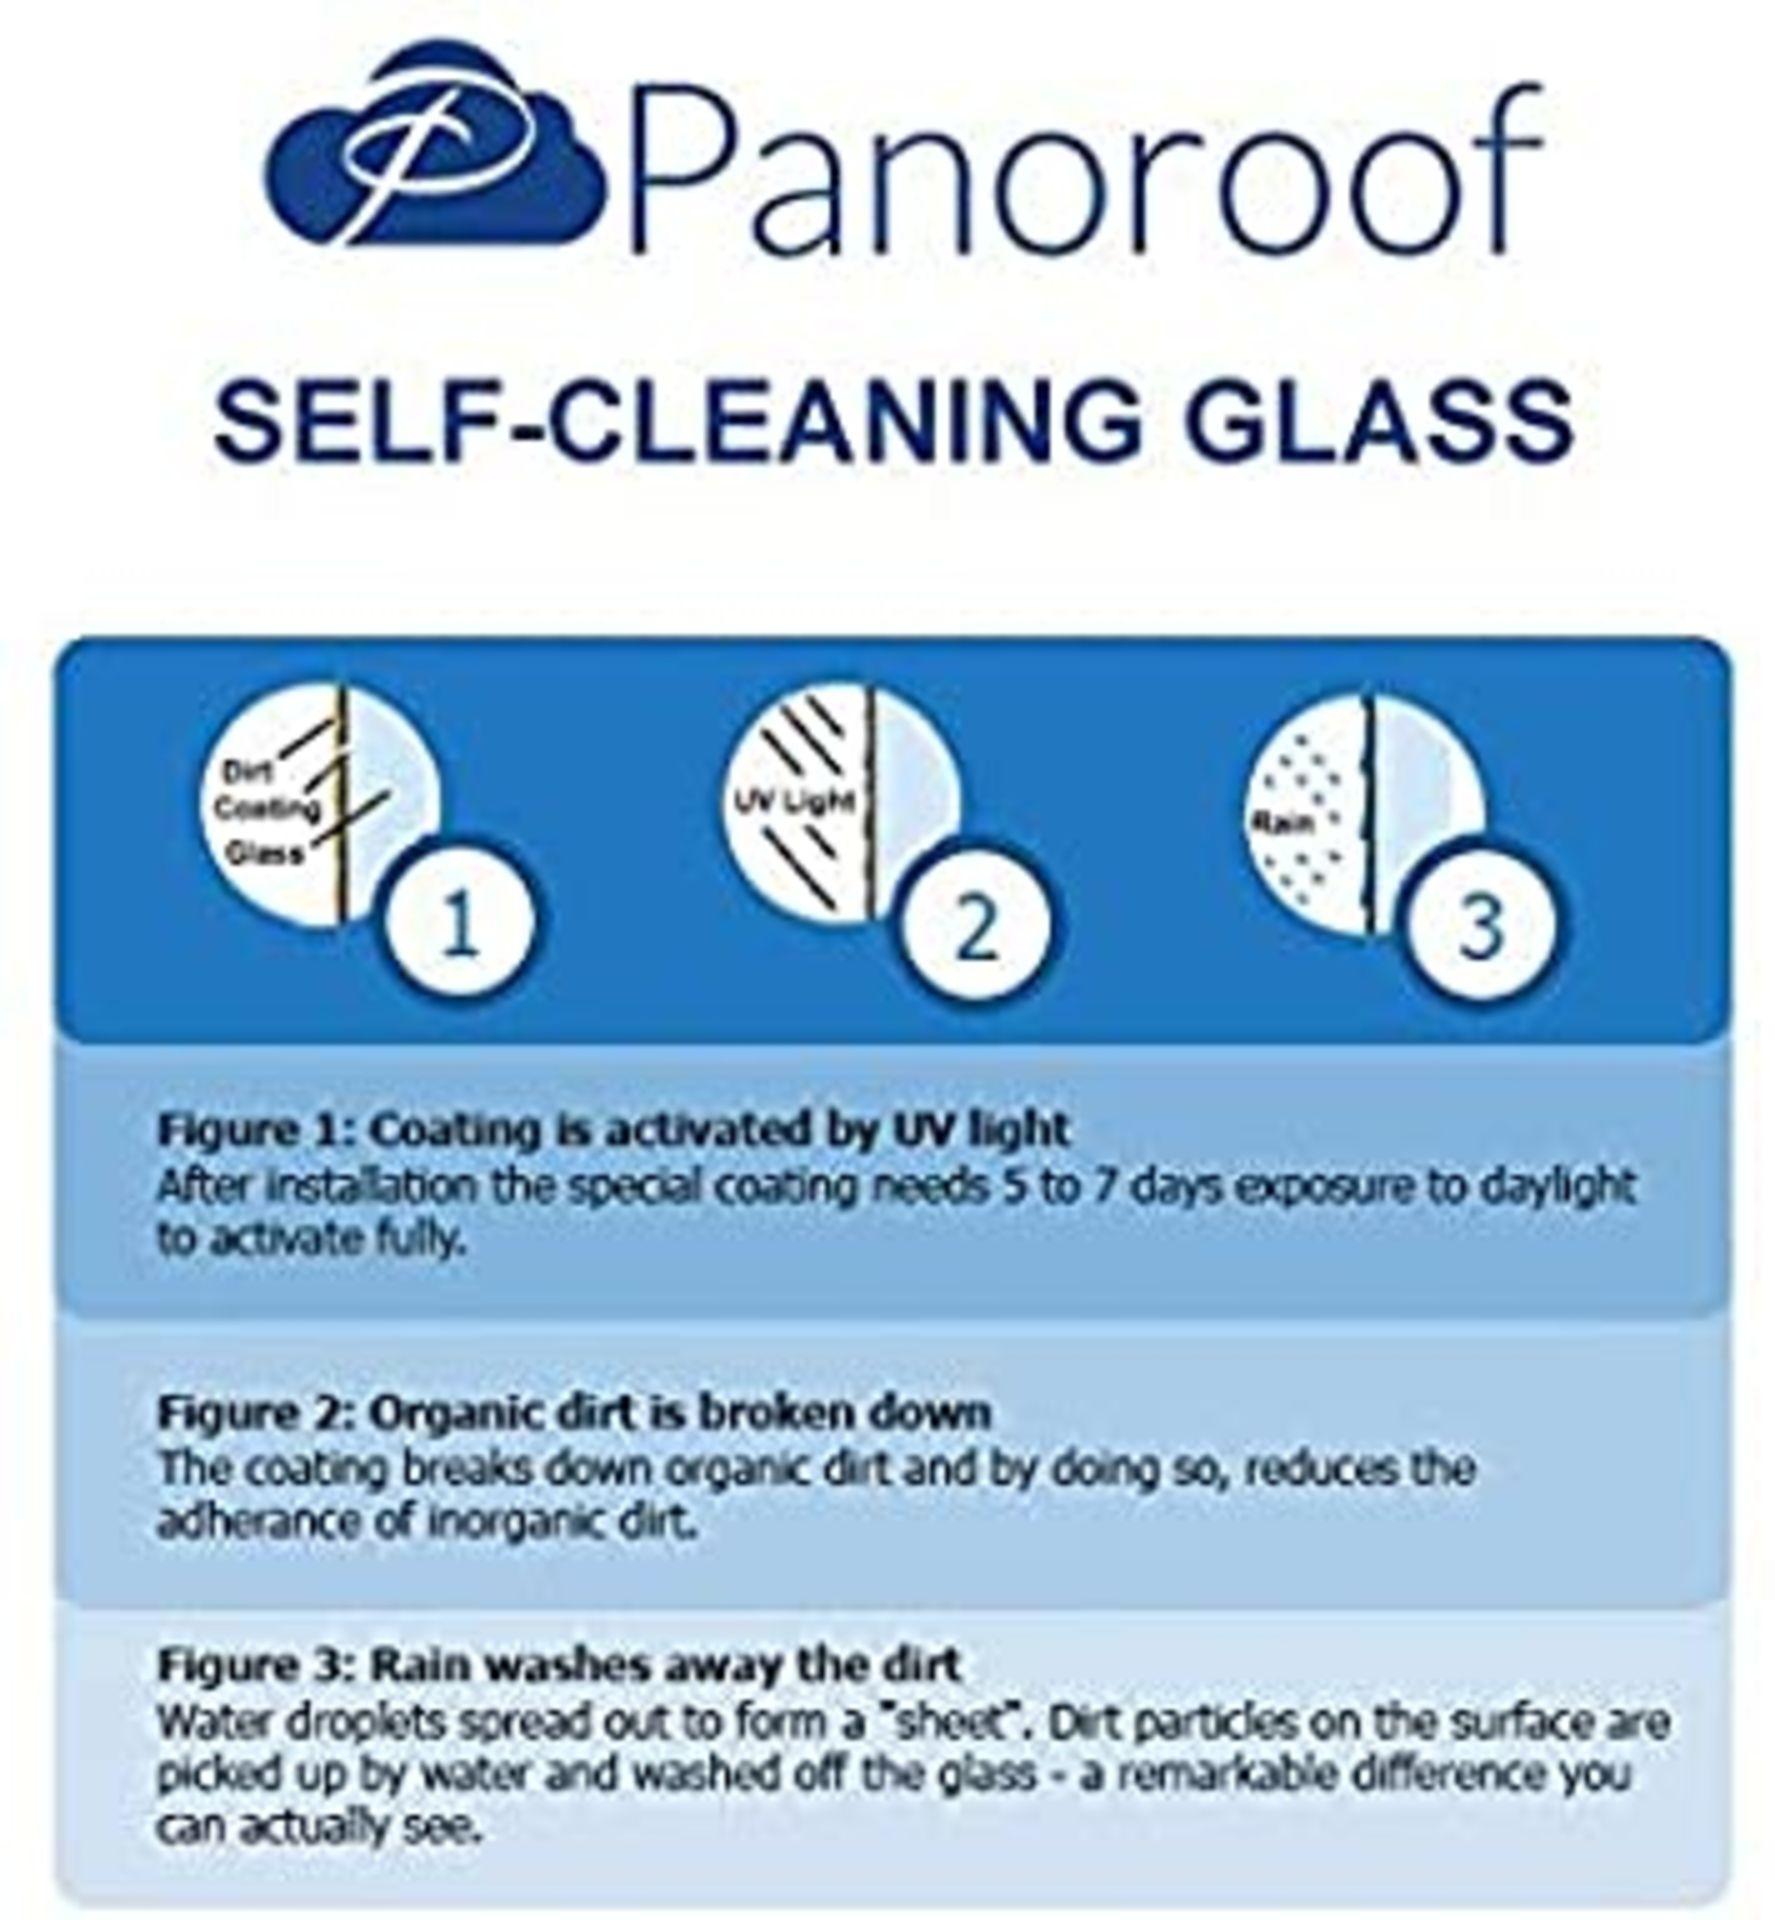 Panoroof 1000x4000mm (inside Size Visable glass area) Seamless Glass Skylight Flat Roof Rooflight - Image 6 of 6